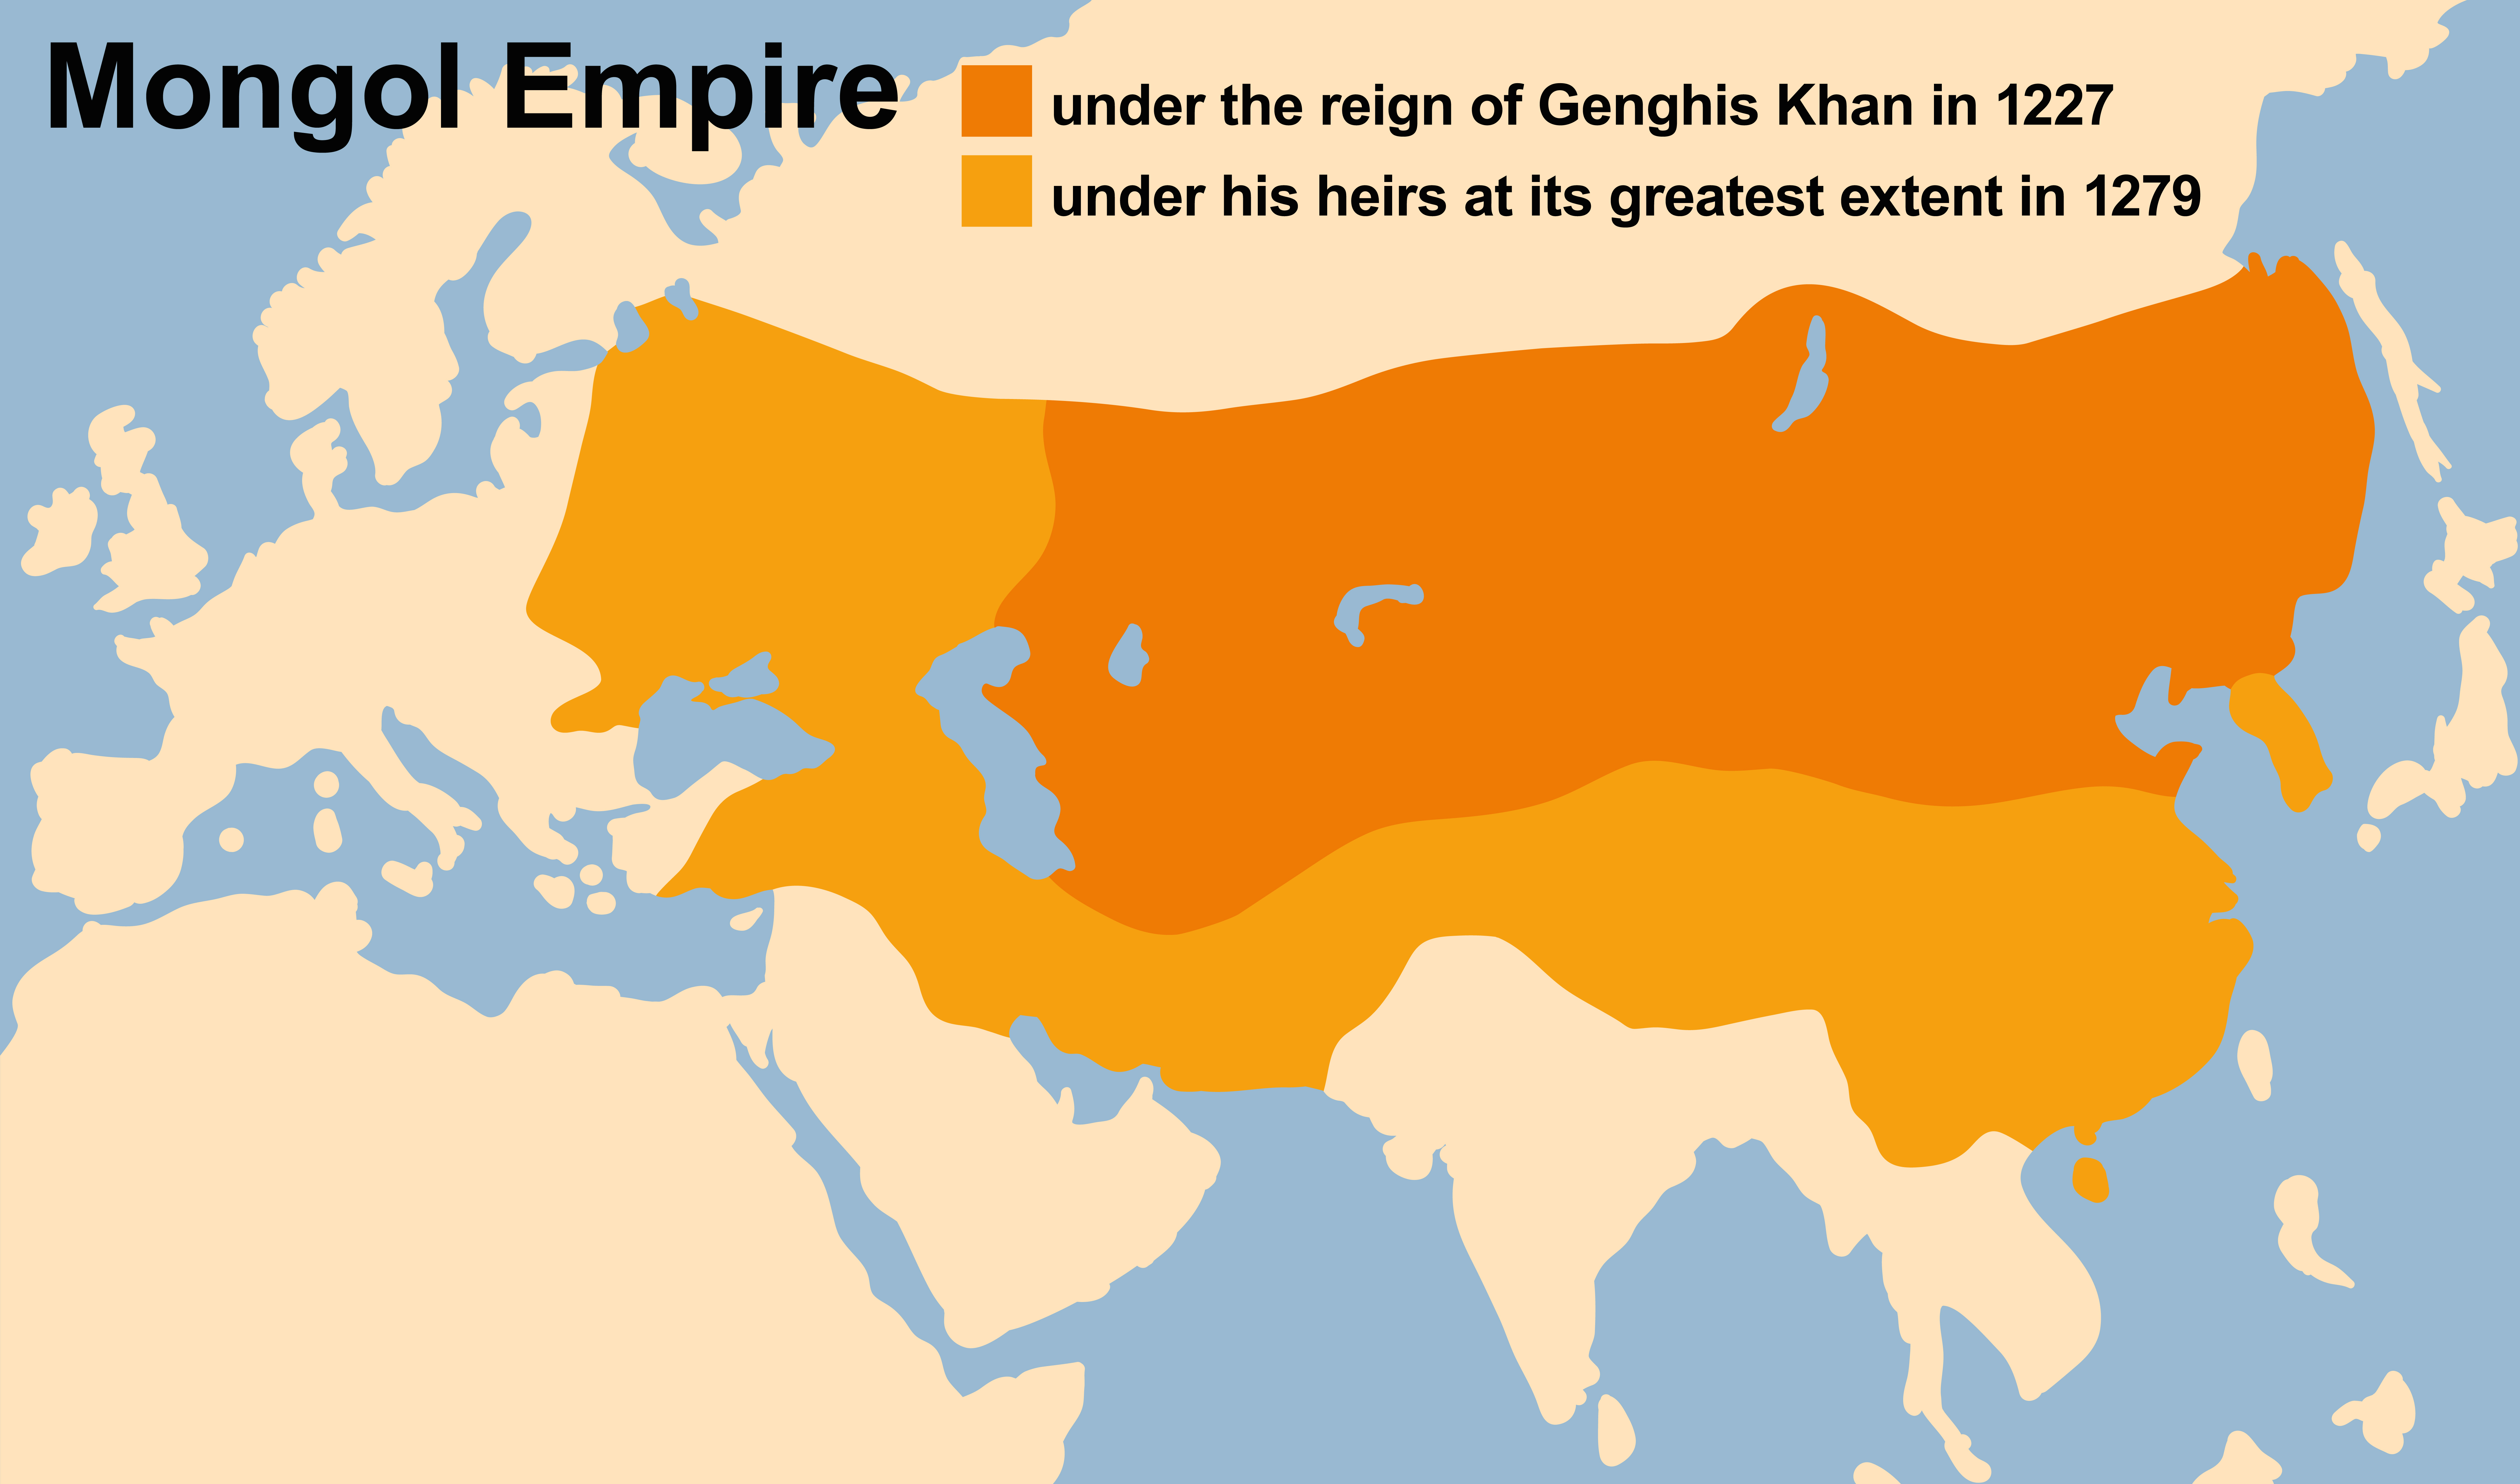 Genghiskhan-map | Did You Know DNA... on hulagu khan, vladimir lenin, khabul khan map, bruce lee, huns map, jack kevorkian, napoleon map, batu khan, mongol empire, mongol invasion of europe, ghengis khan map, marco polo map, jeanne d'arc, khan dynasty map, road trip map, amelia earhart map, ming dynasty, che guevara, robin hood map, golden horde, karl marx, kublai khan, great khan map, yuan dynasty, julius caesar map,